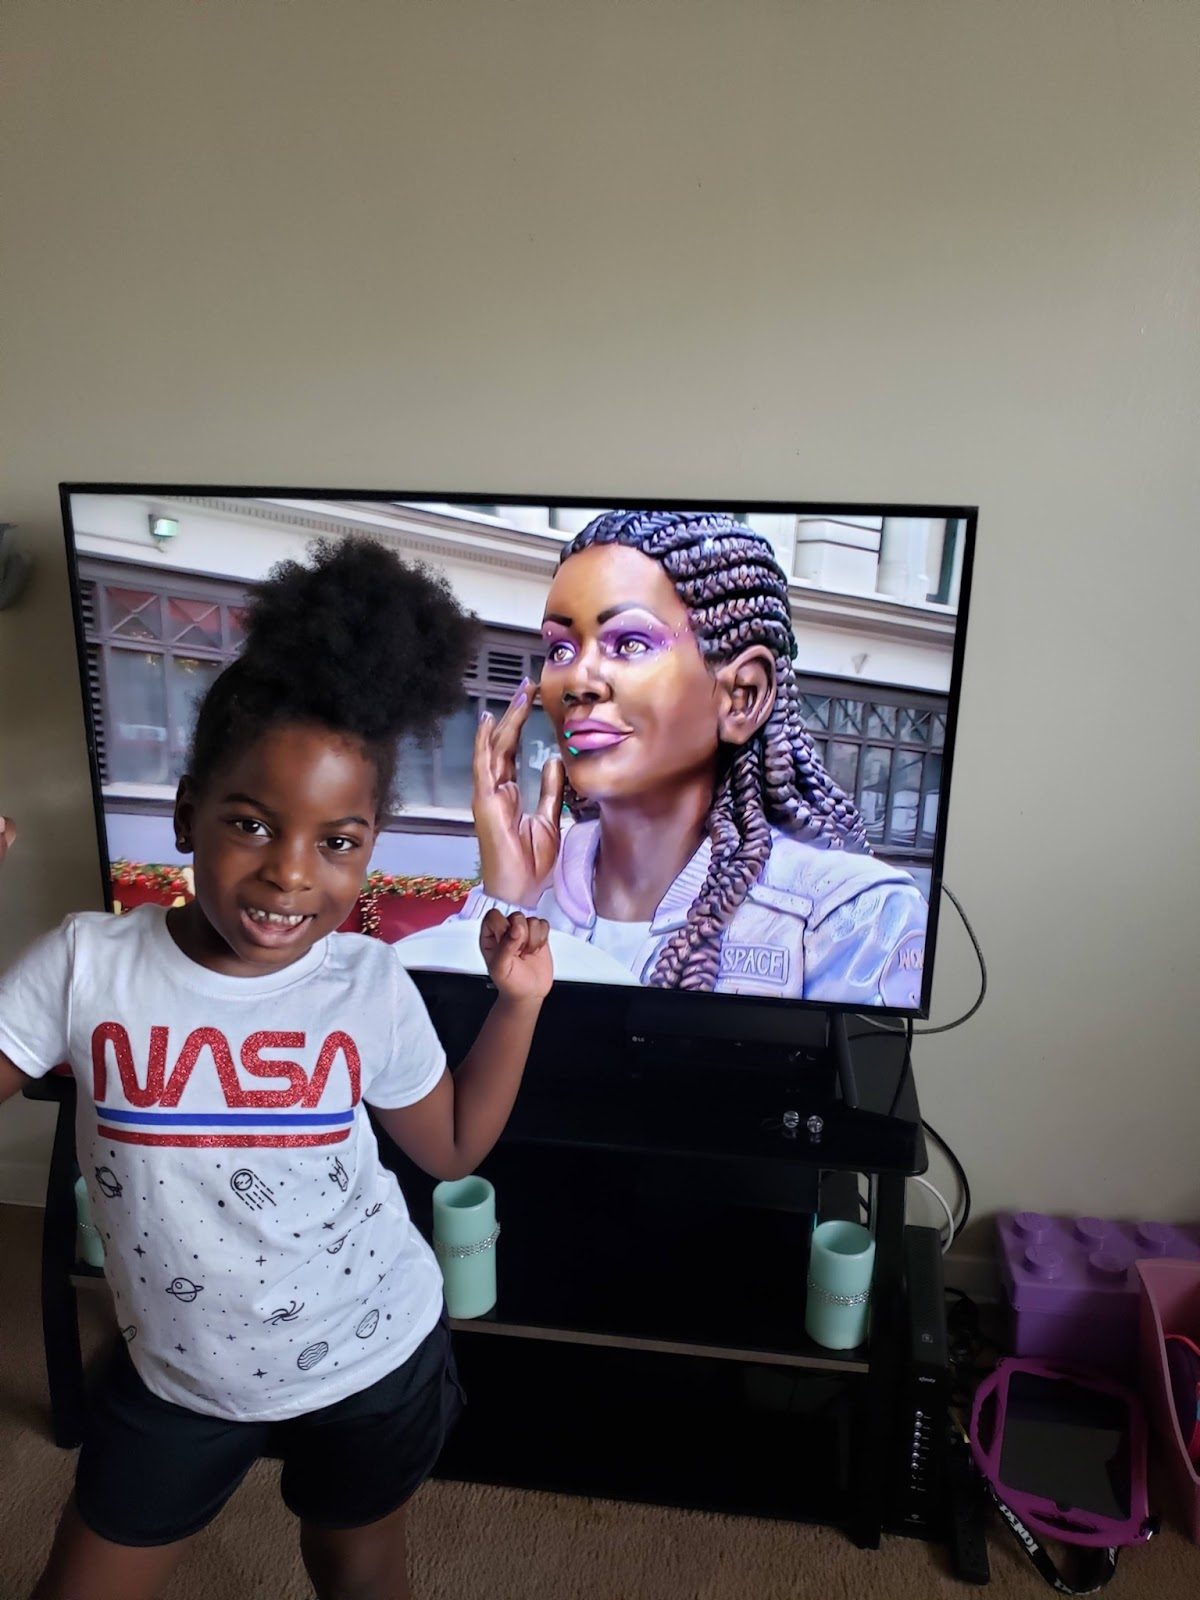 Ryan wearing a NASA shirt in front of a TV with a Black woman on the screen.